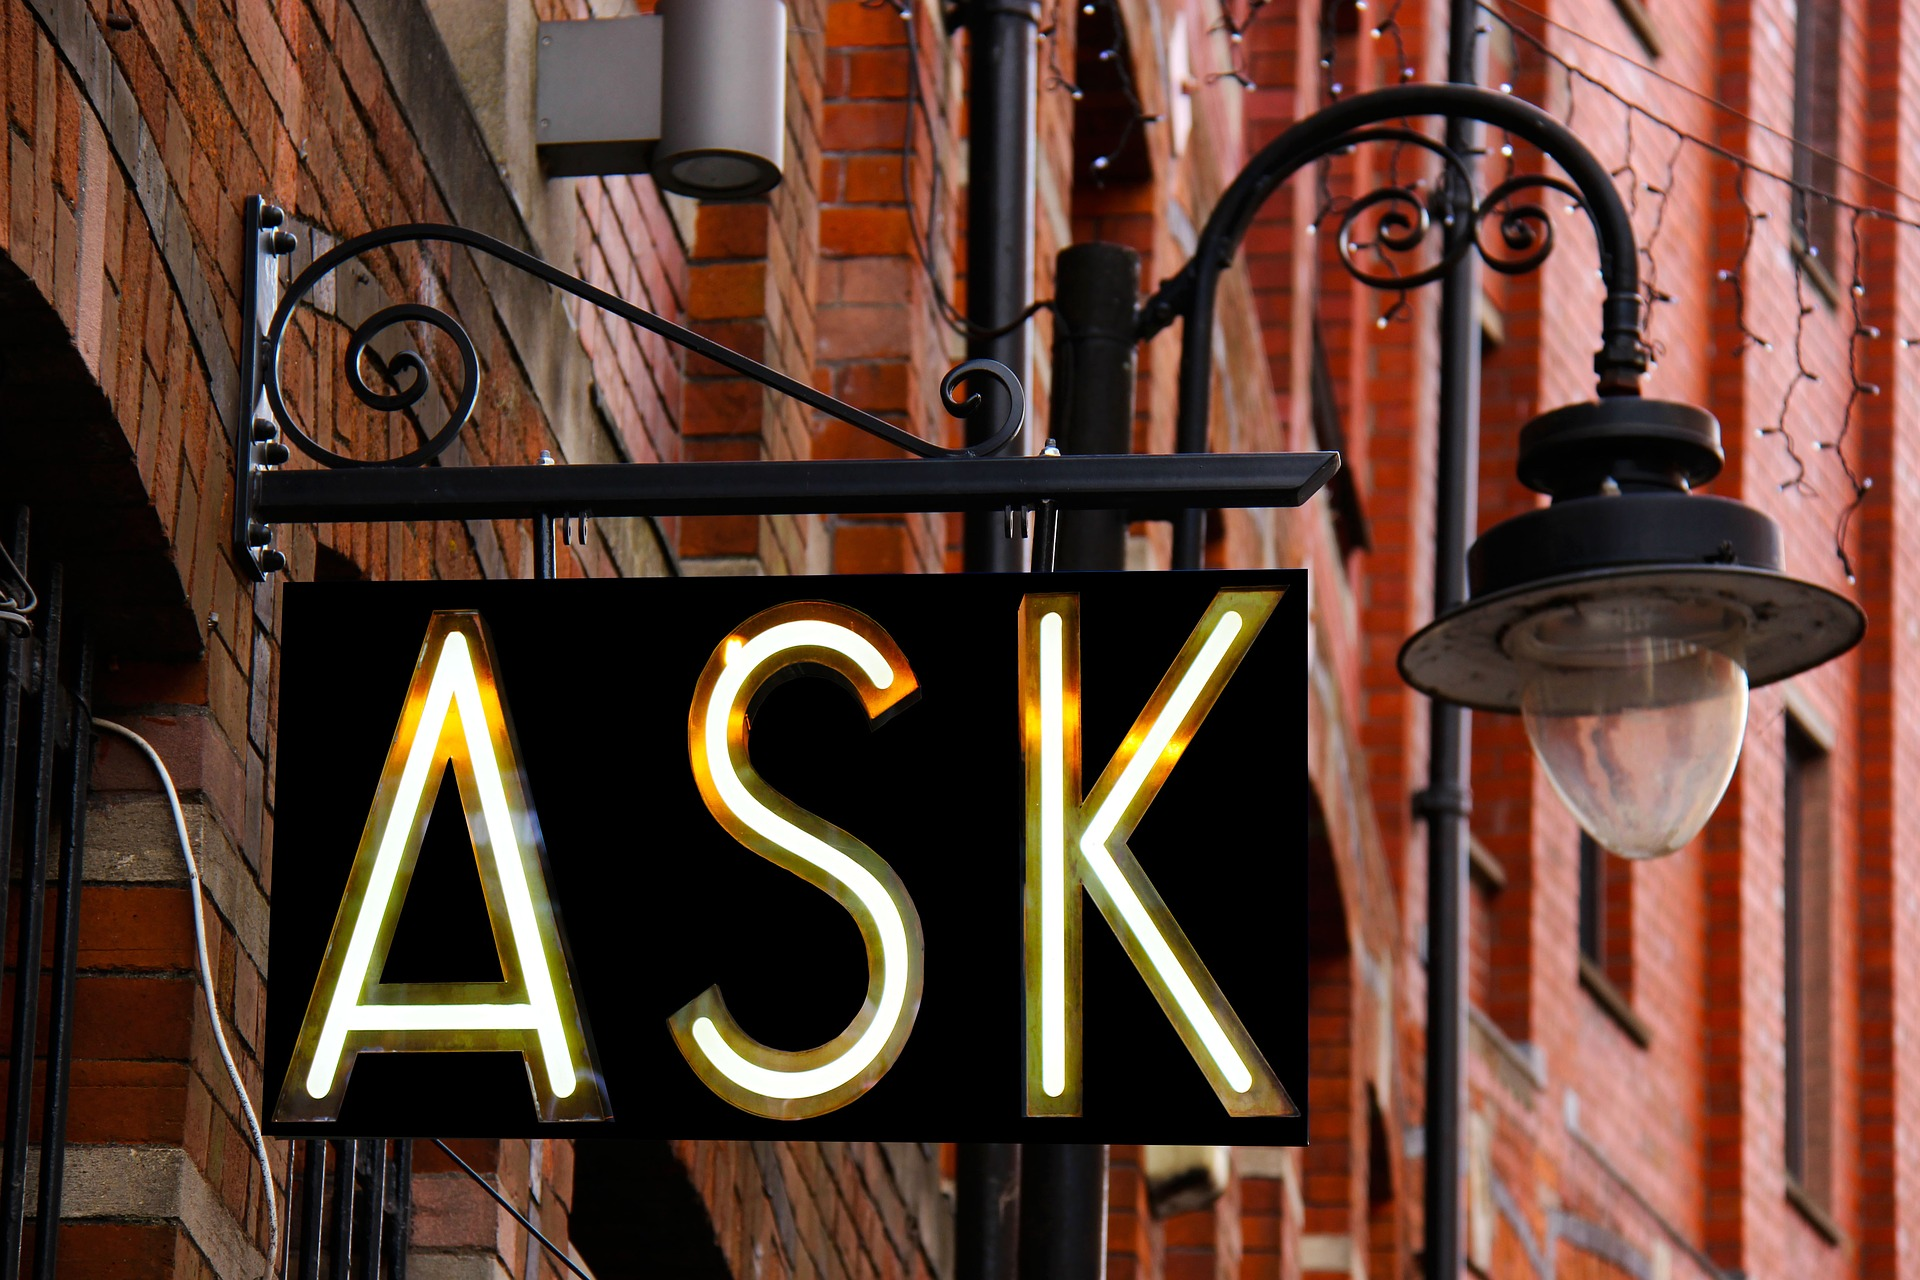 ask questions to make a change